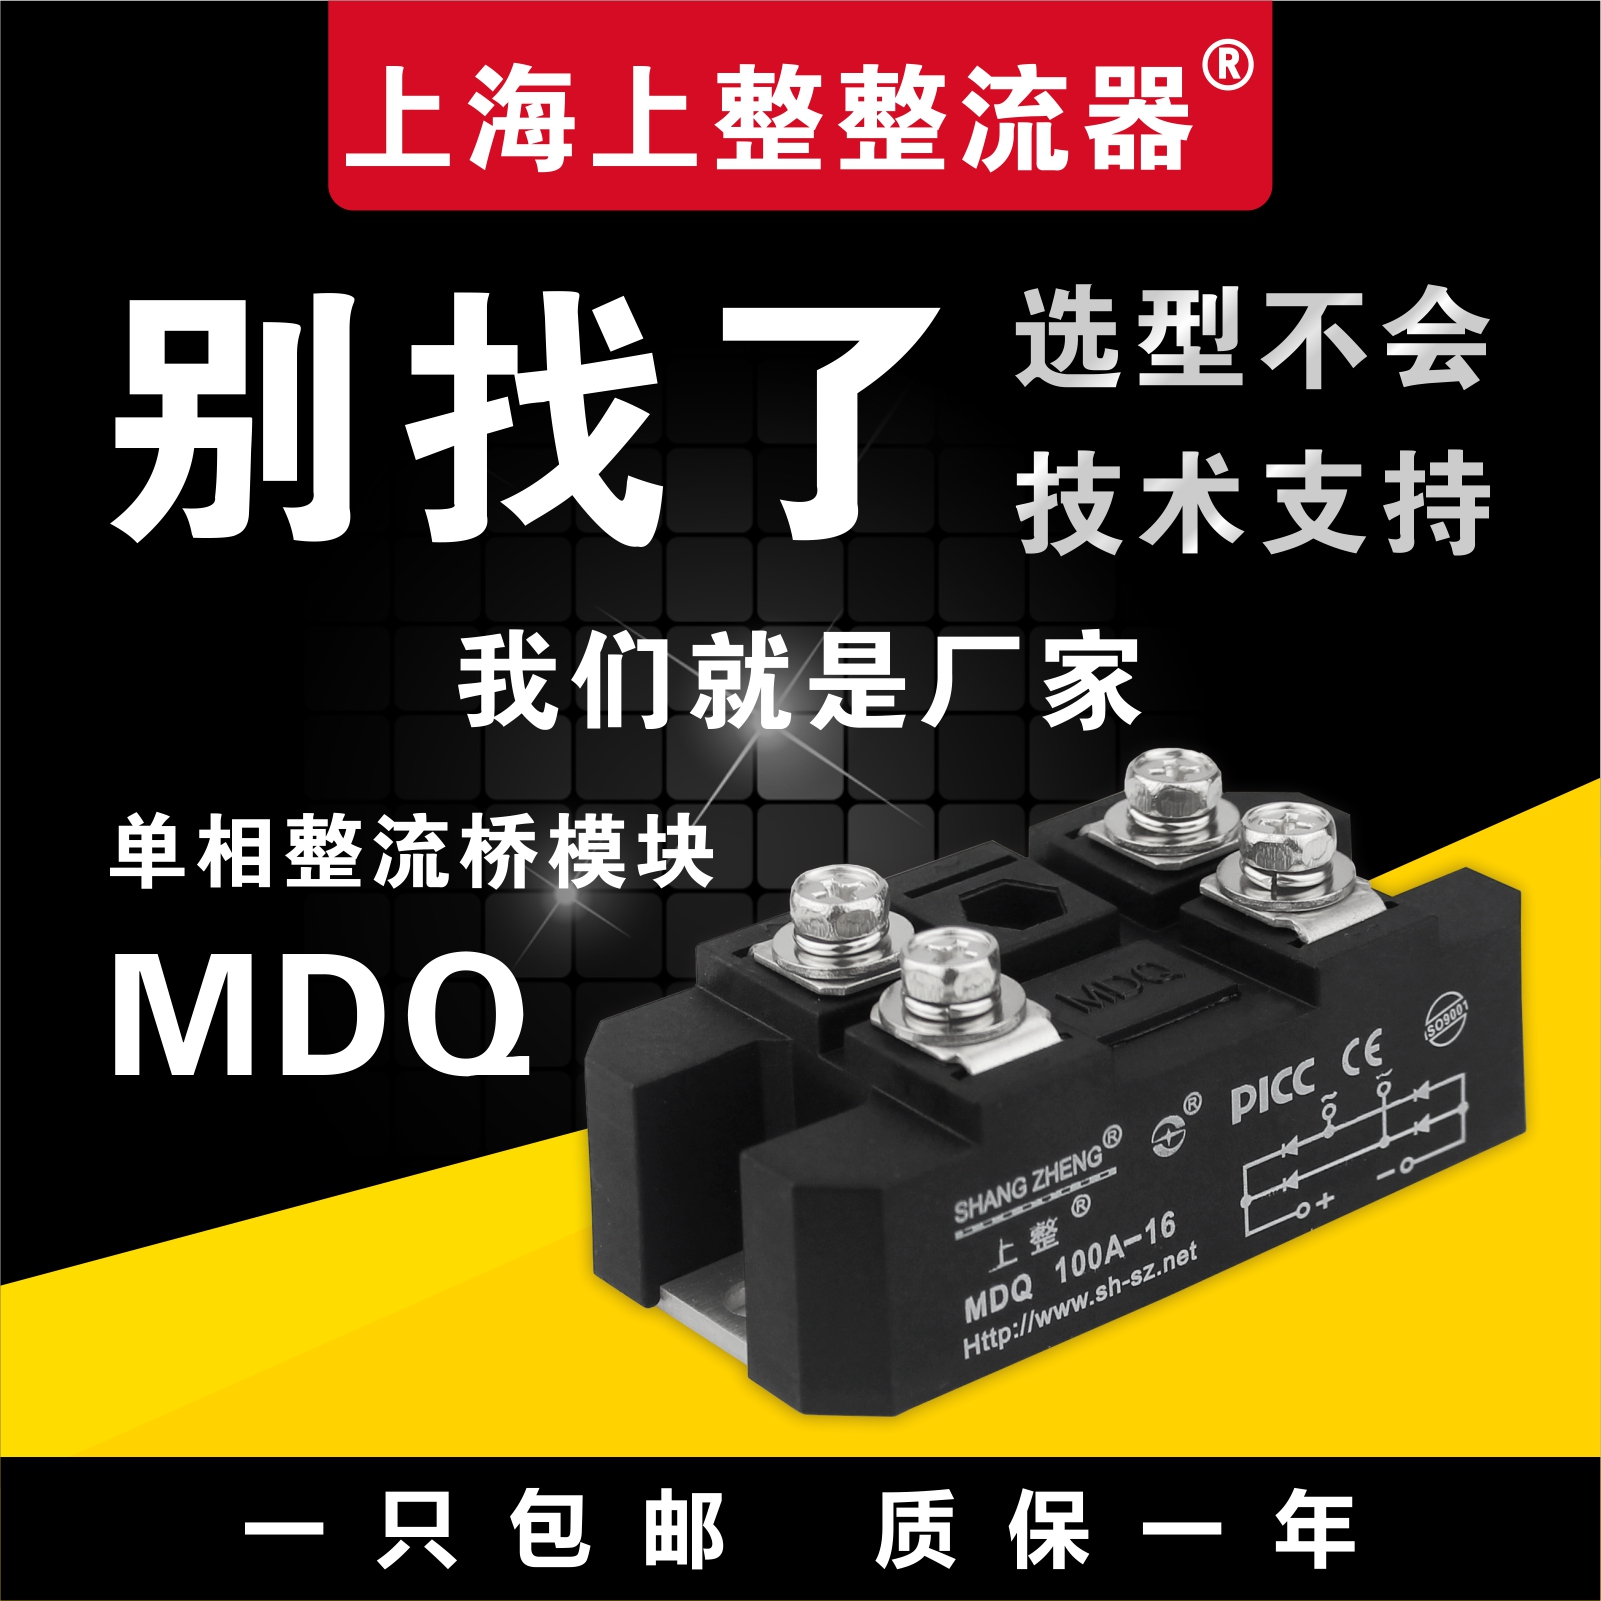 On the whole single-phase rectifier rectifier bridge module charger MDQ12V100A220V high-power DC 60A